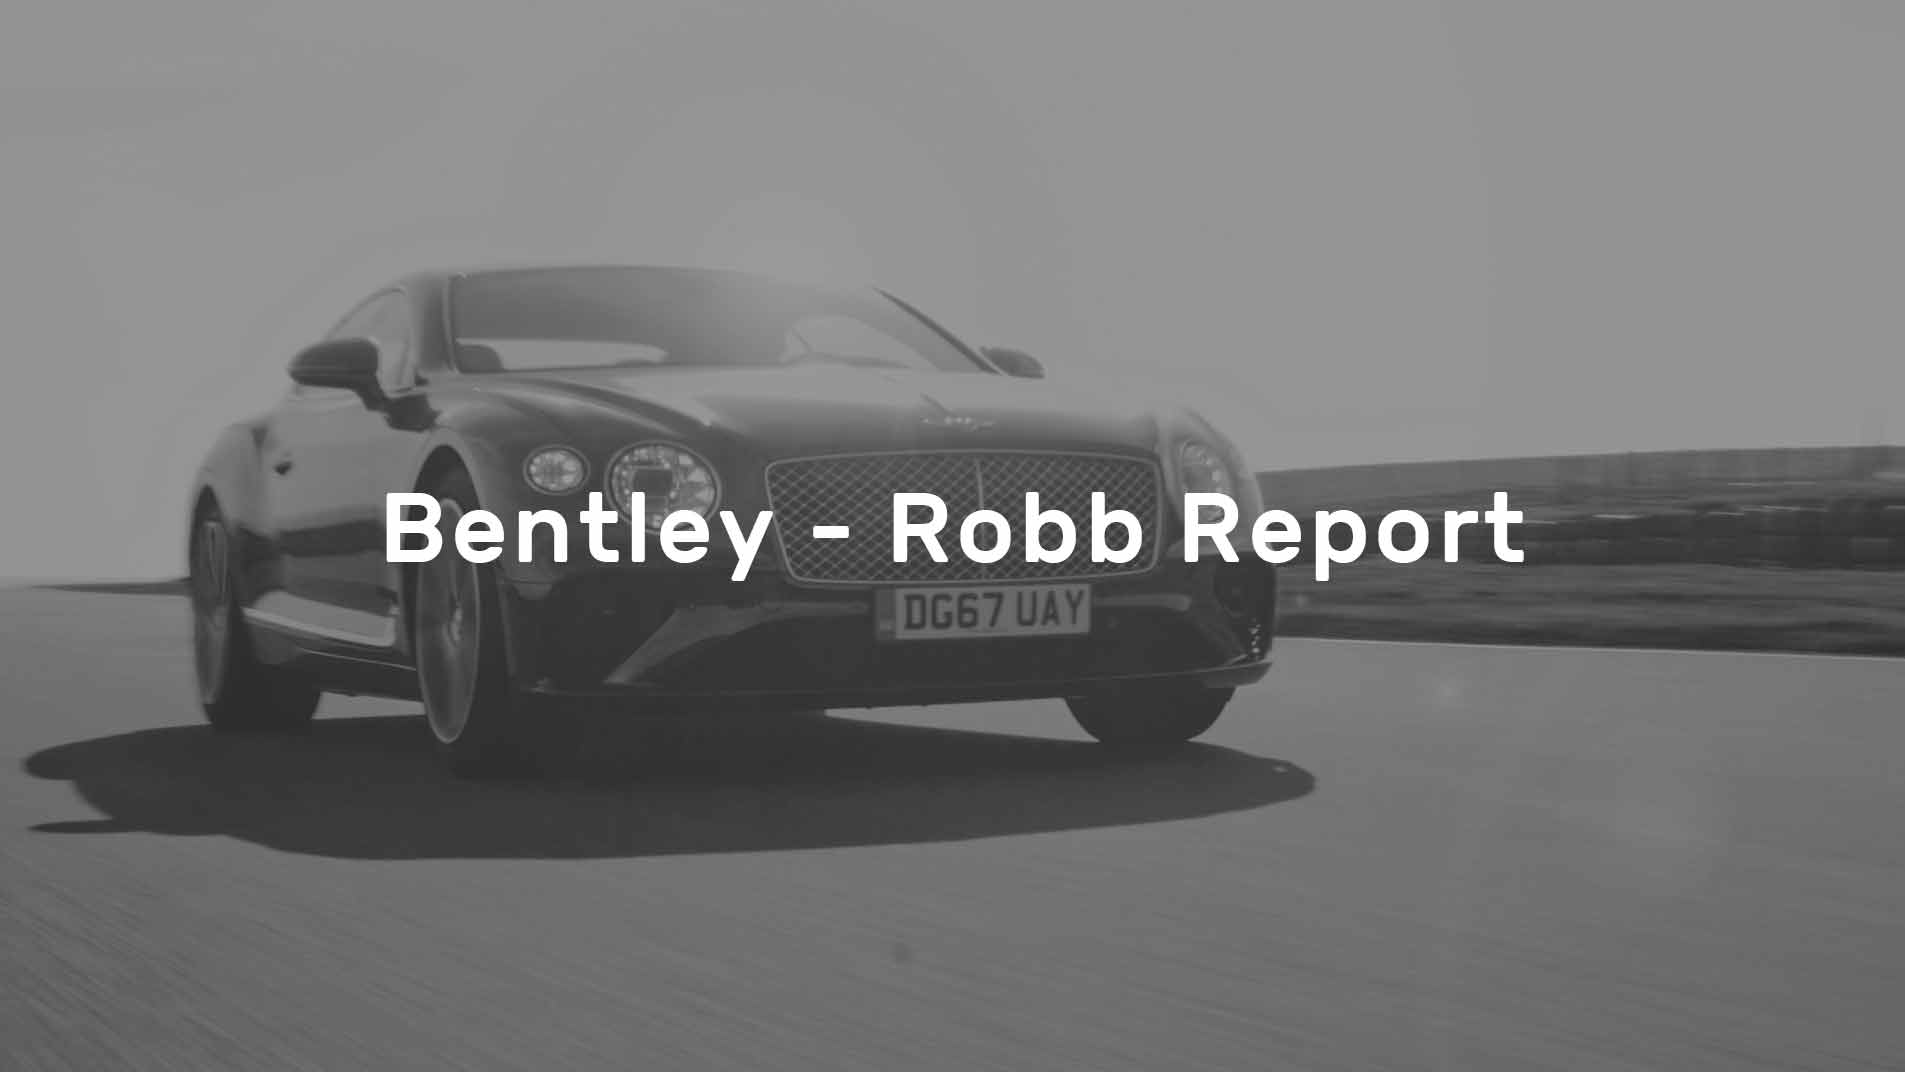 Bentley-Robb Report